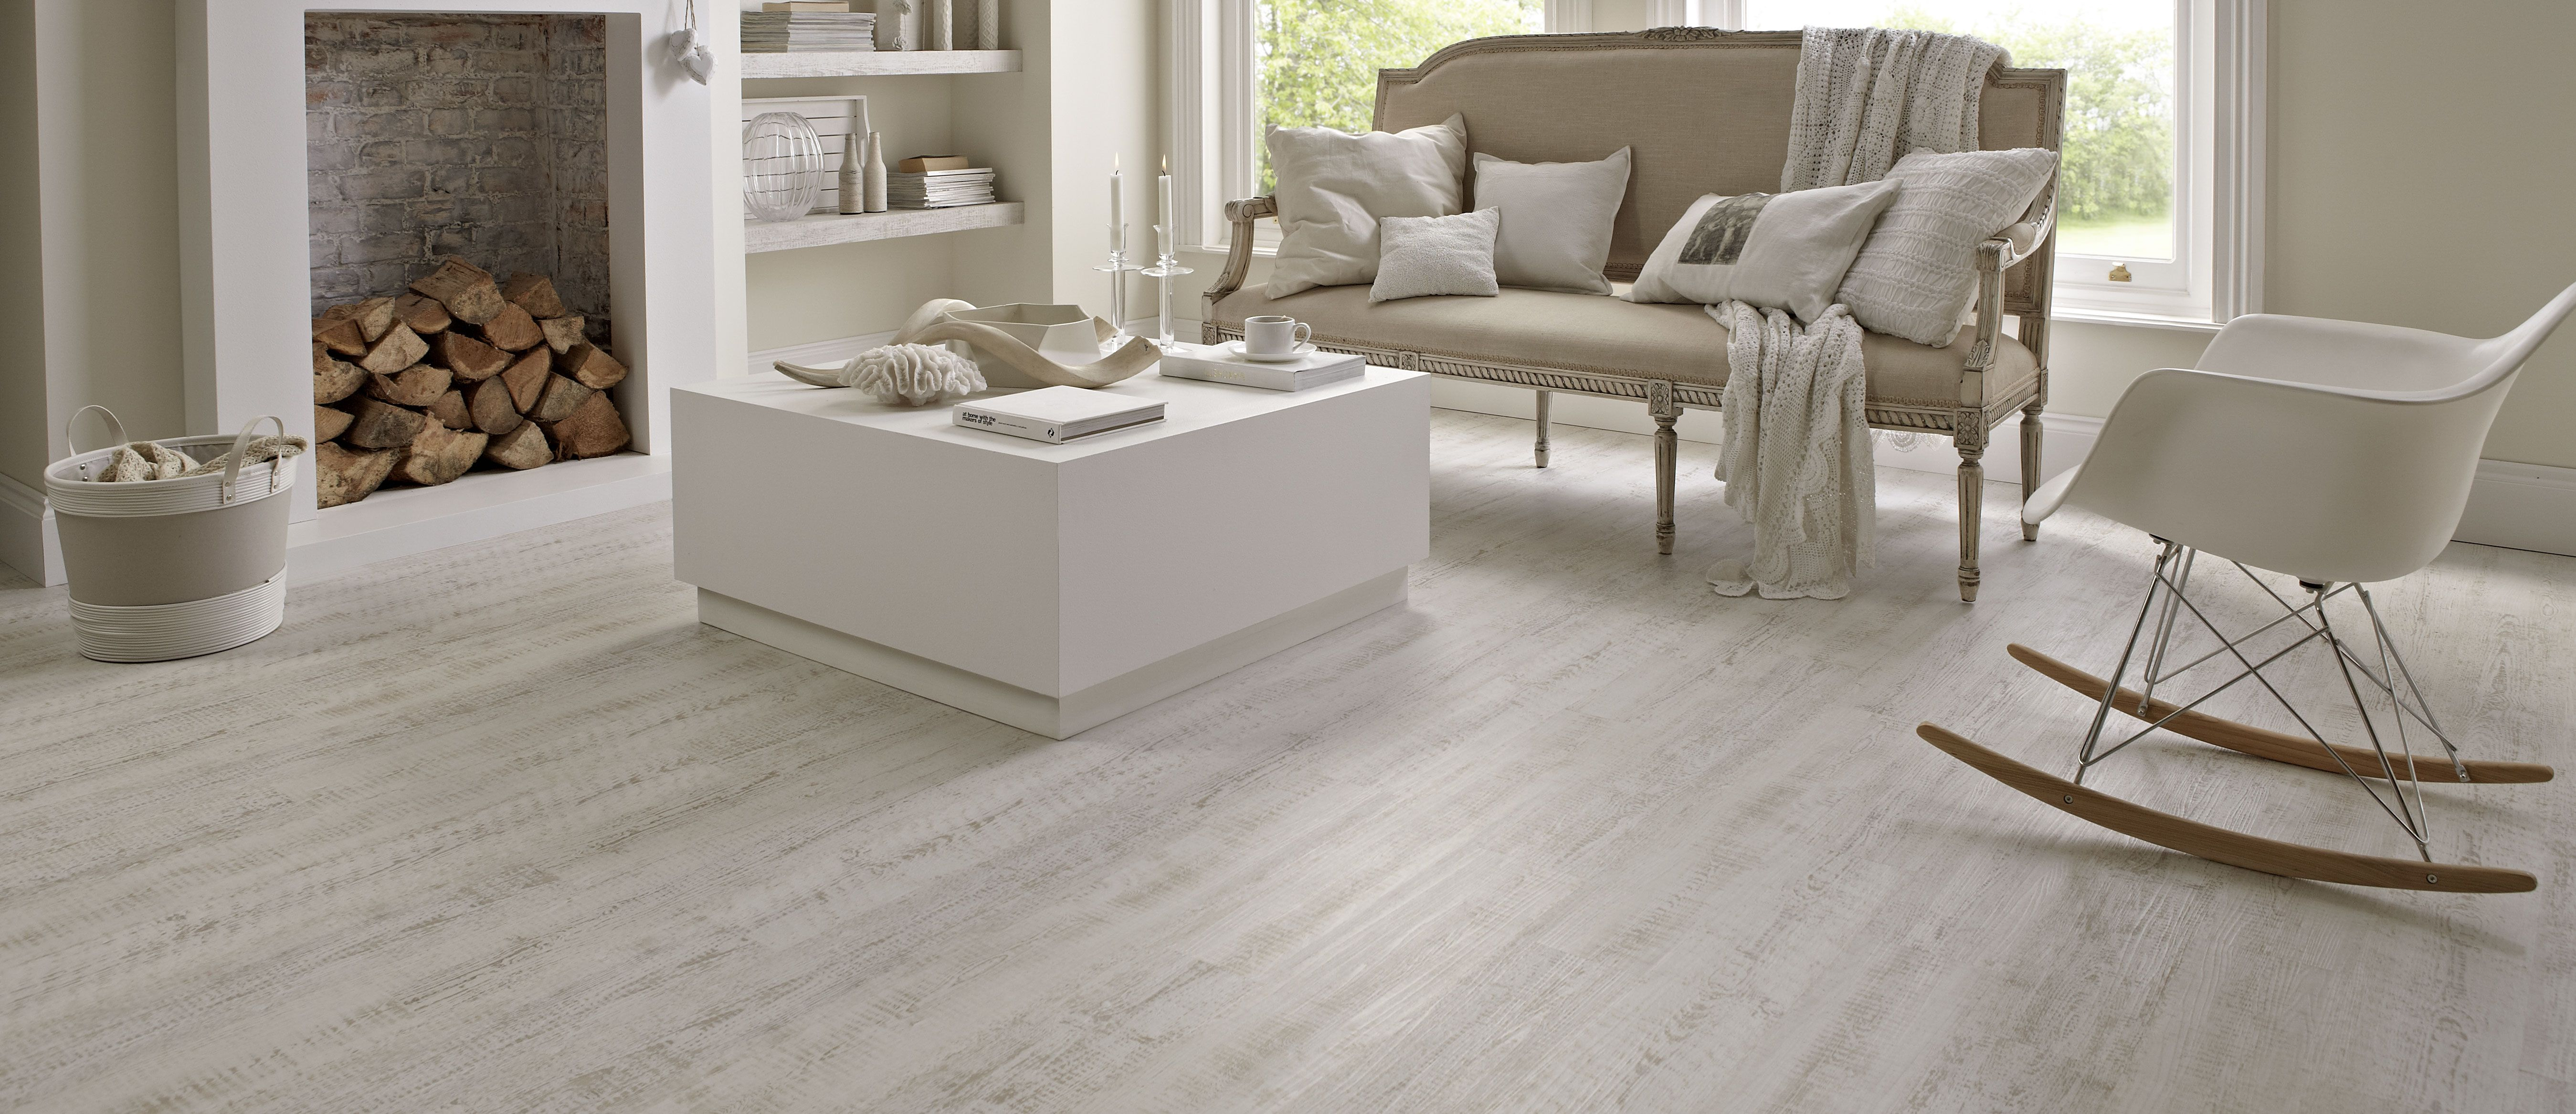 character oak ethical mirage tree memories sweet white house rq collection floor flooring